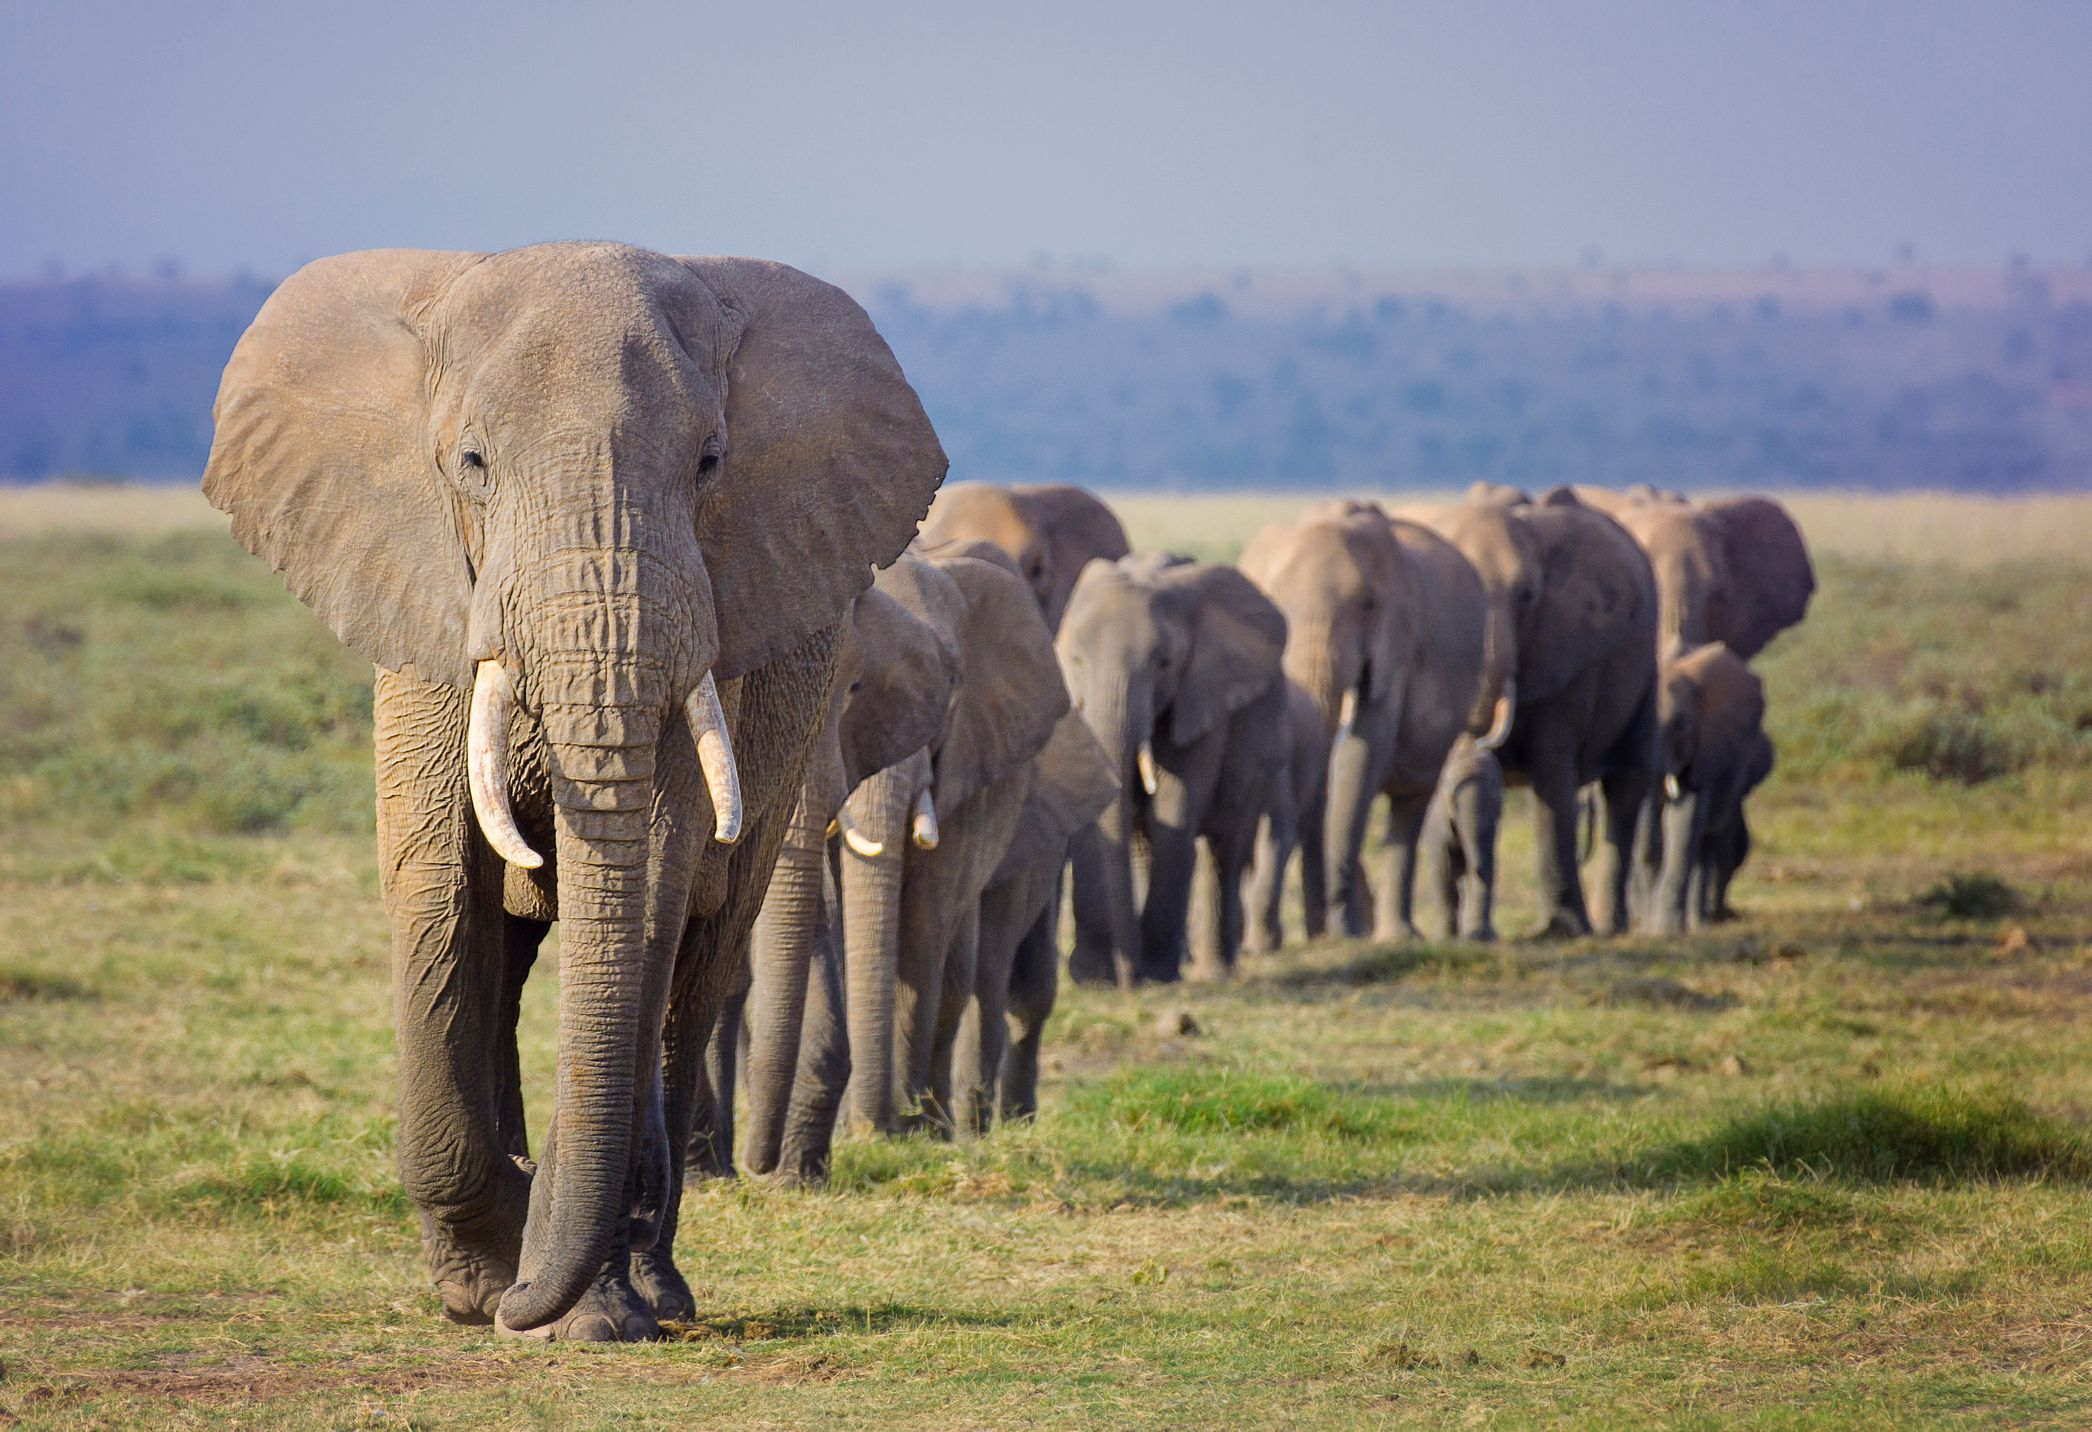 Amazing Line of Elephant Family Marching in Order at Amboseli, Kenya.   Foto: Stock Fotografie via Getty Images